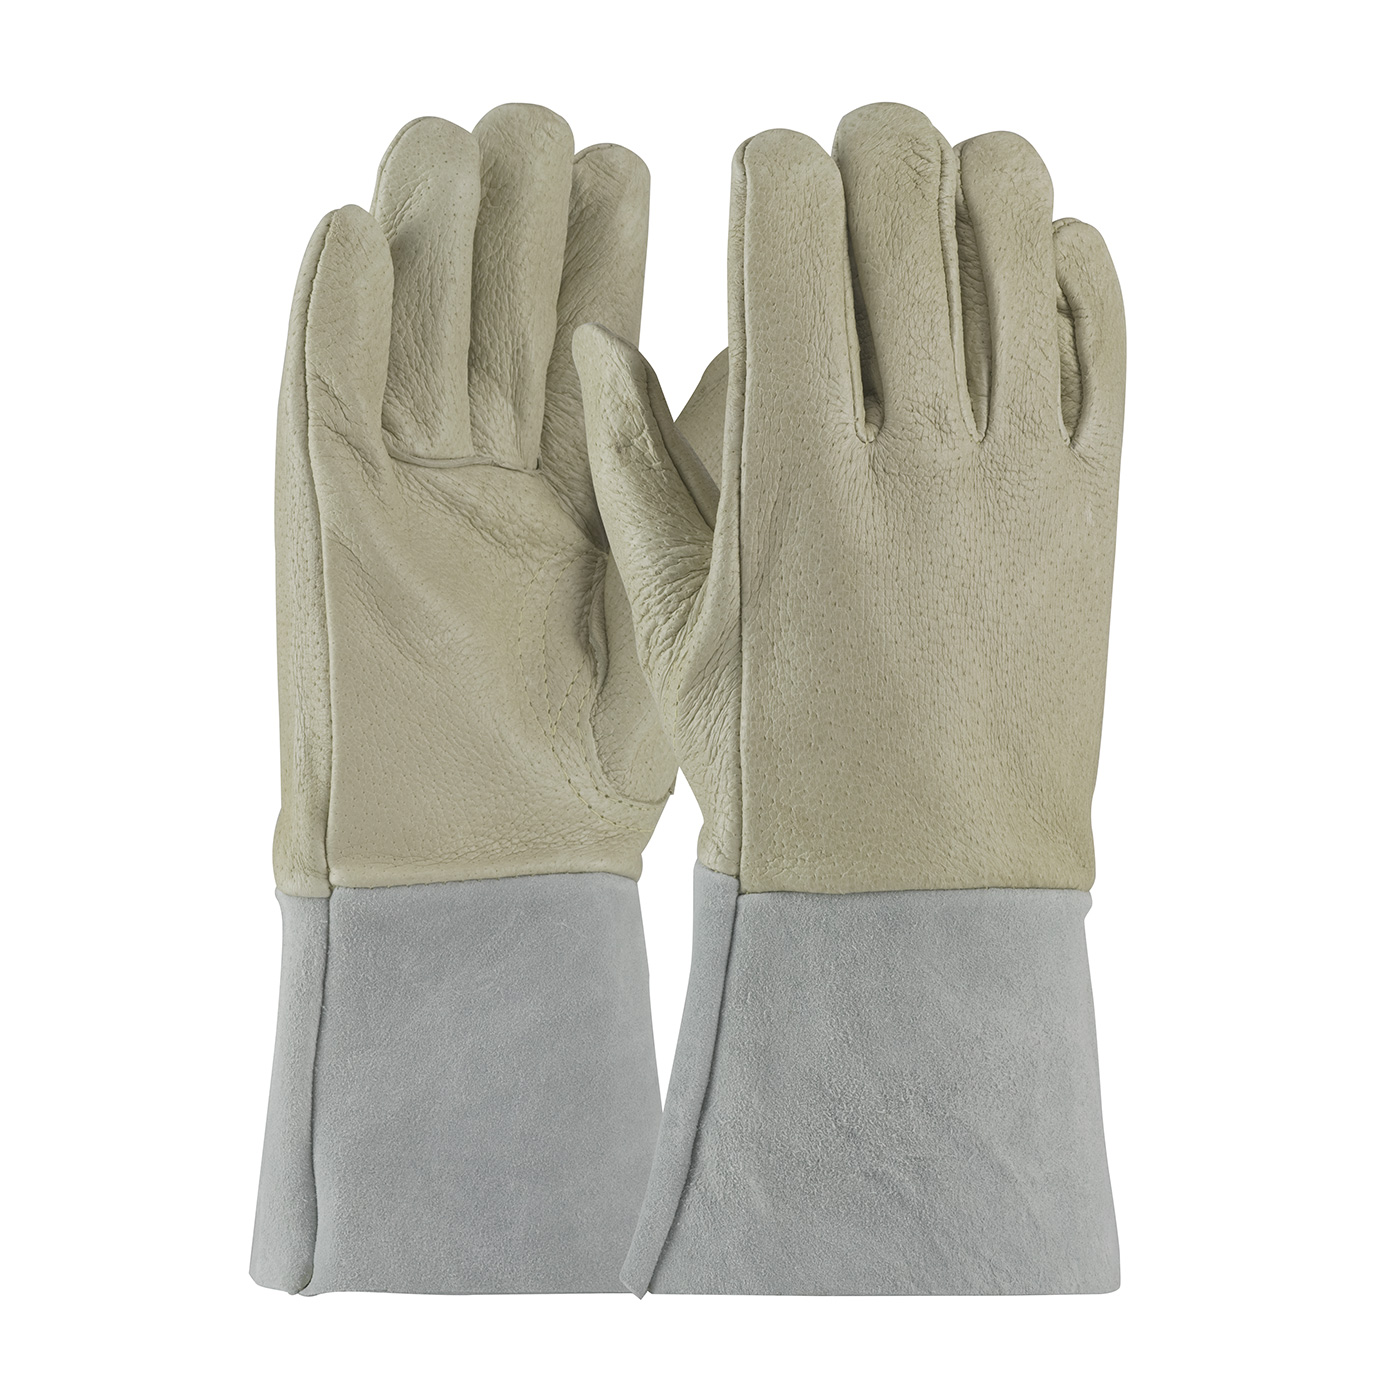 75-320 PIP® Top Grain Pigskin Leather Mig Tig Welder's Glove with Kevlar® Stitching and Split Leather Gauntlet Cuff